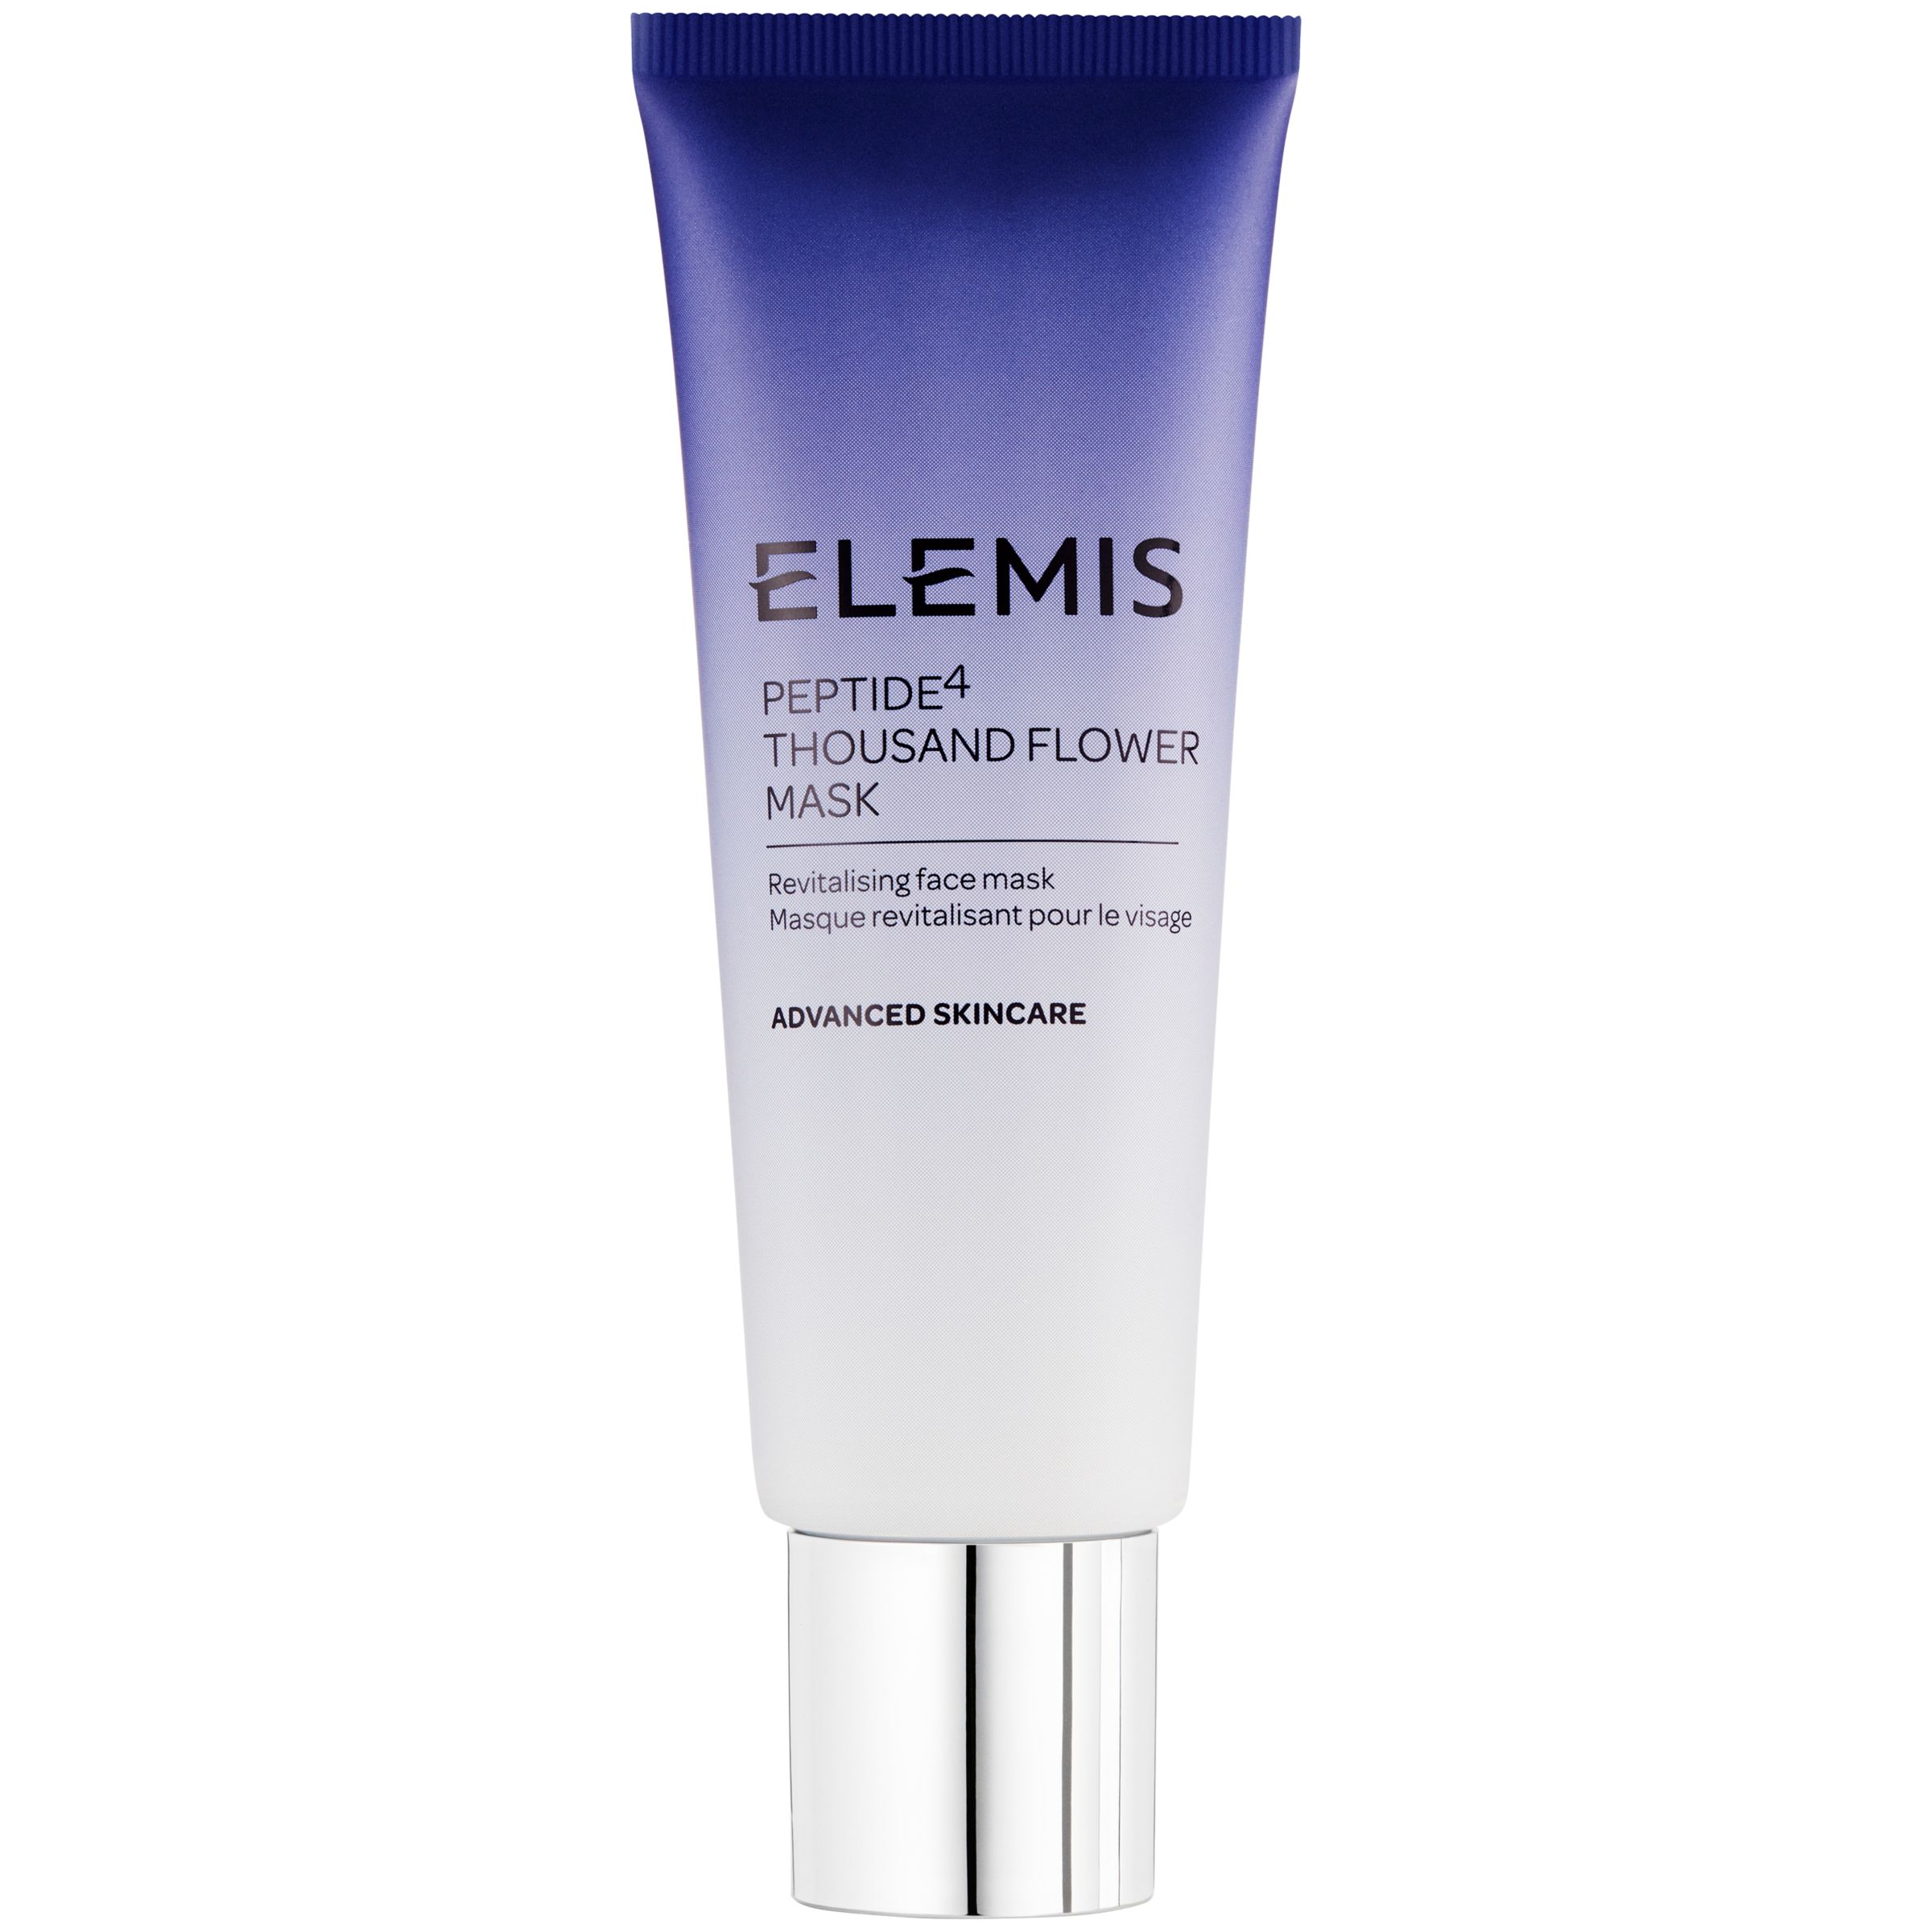 BuyElemis Peptide4 Thousand Flower Mask, 75ml Online at johnlewis.com